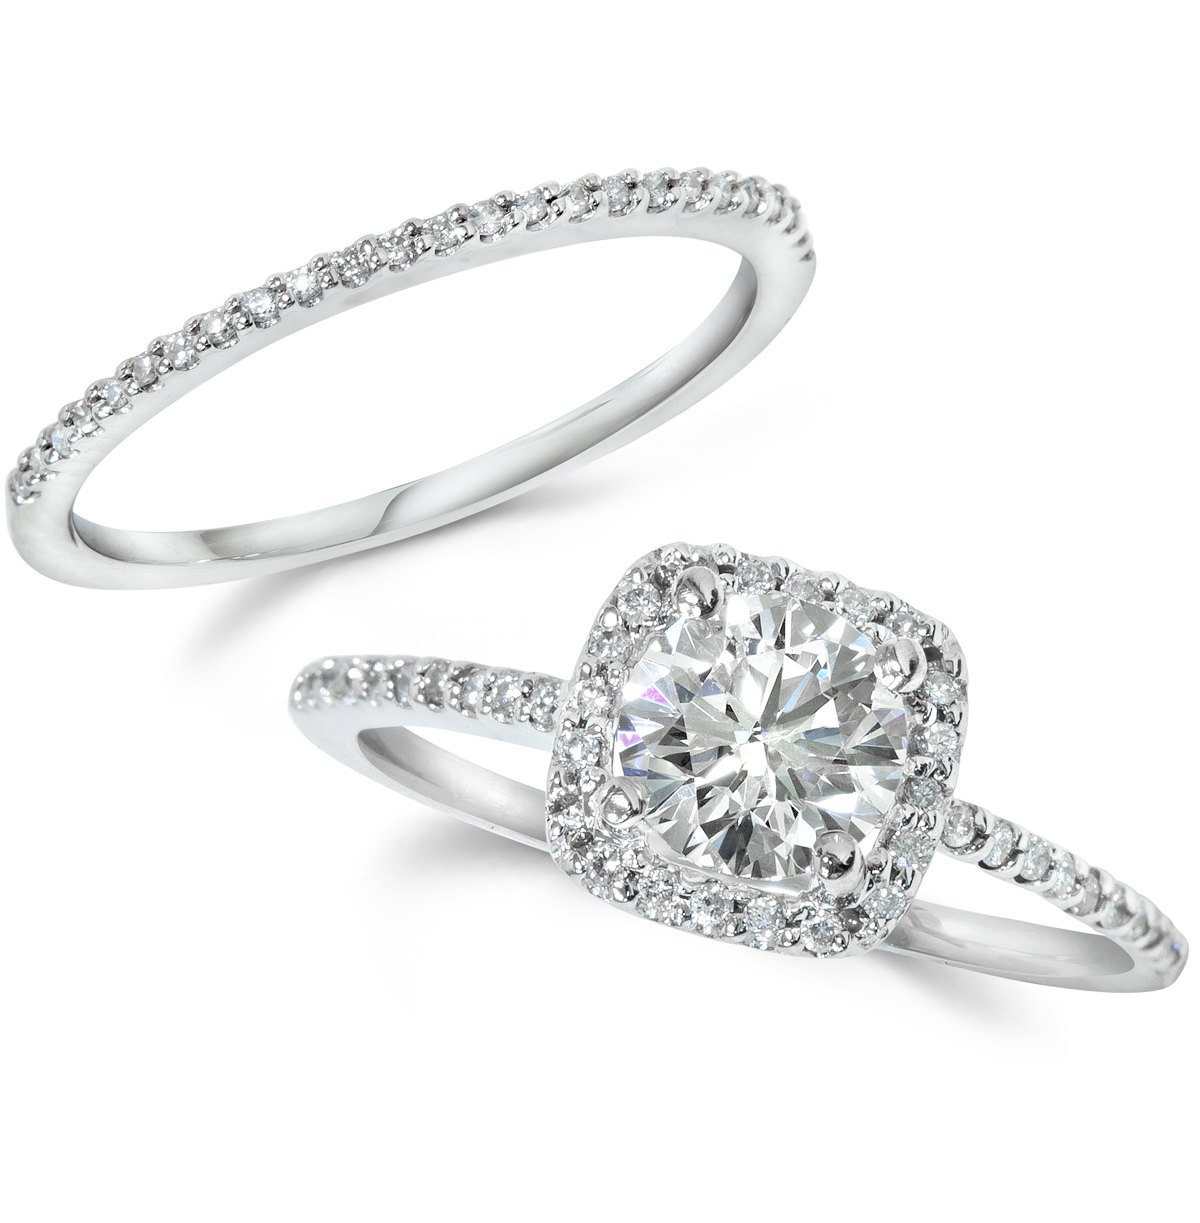 Diamond Engagement Ring Matching Halo Wedding Ring Set 14K White Gold Round